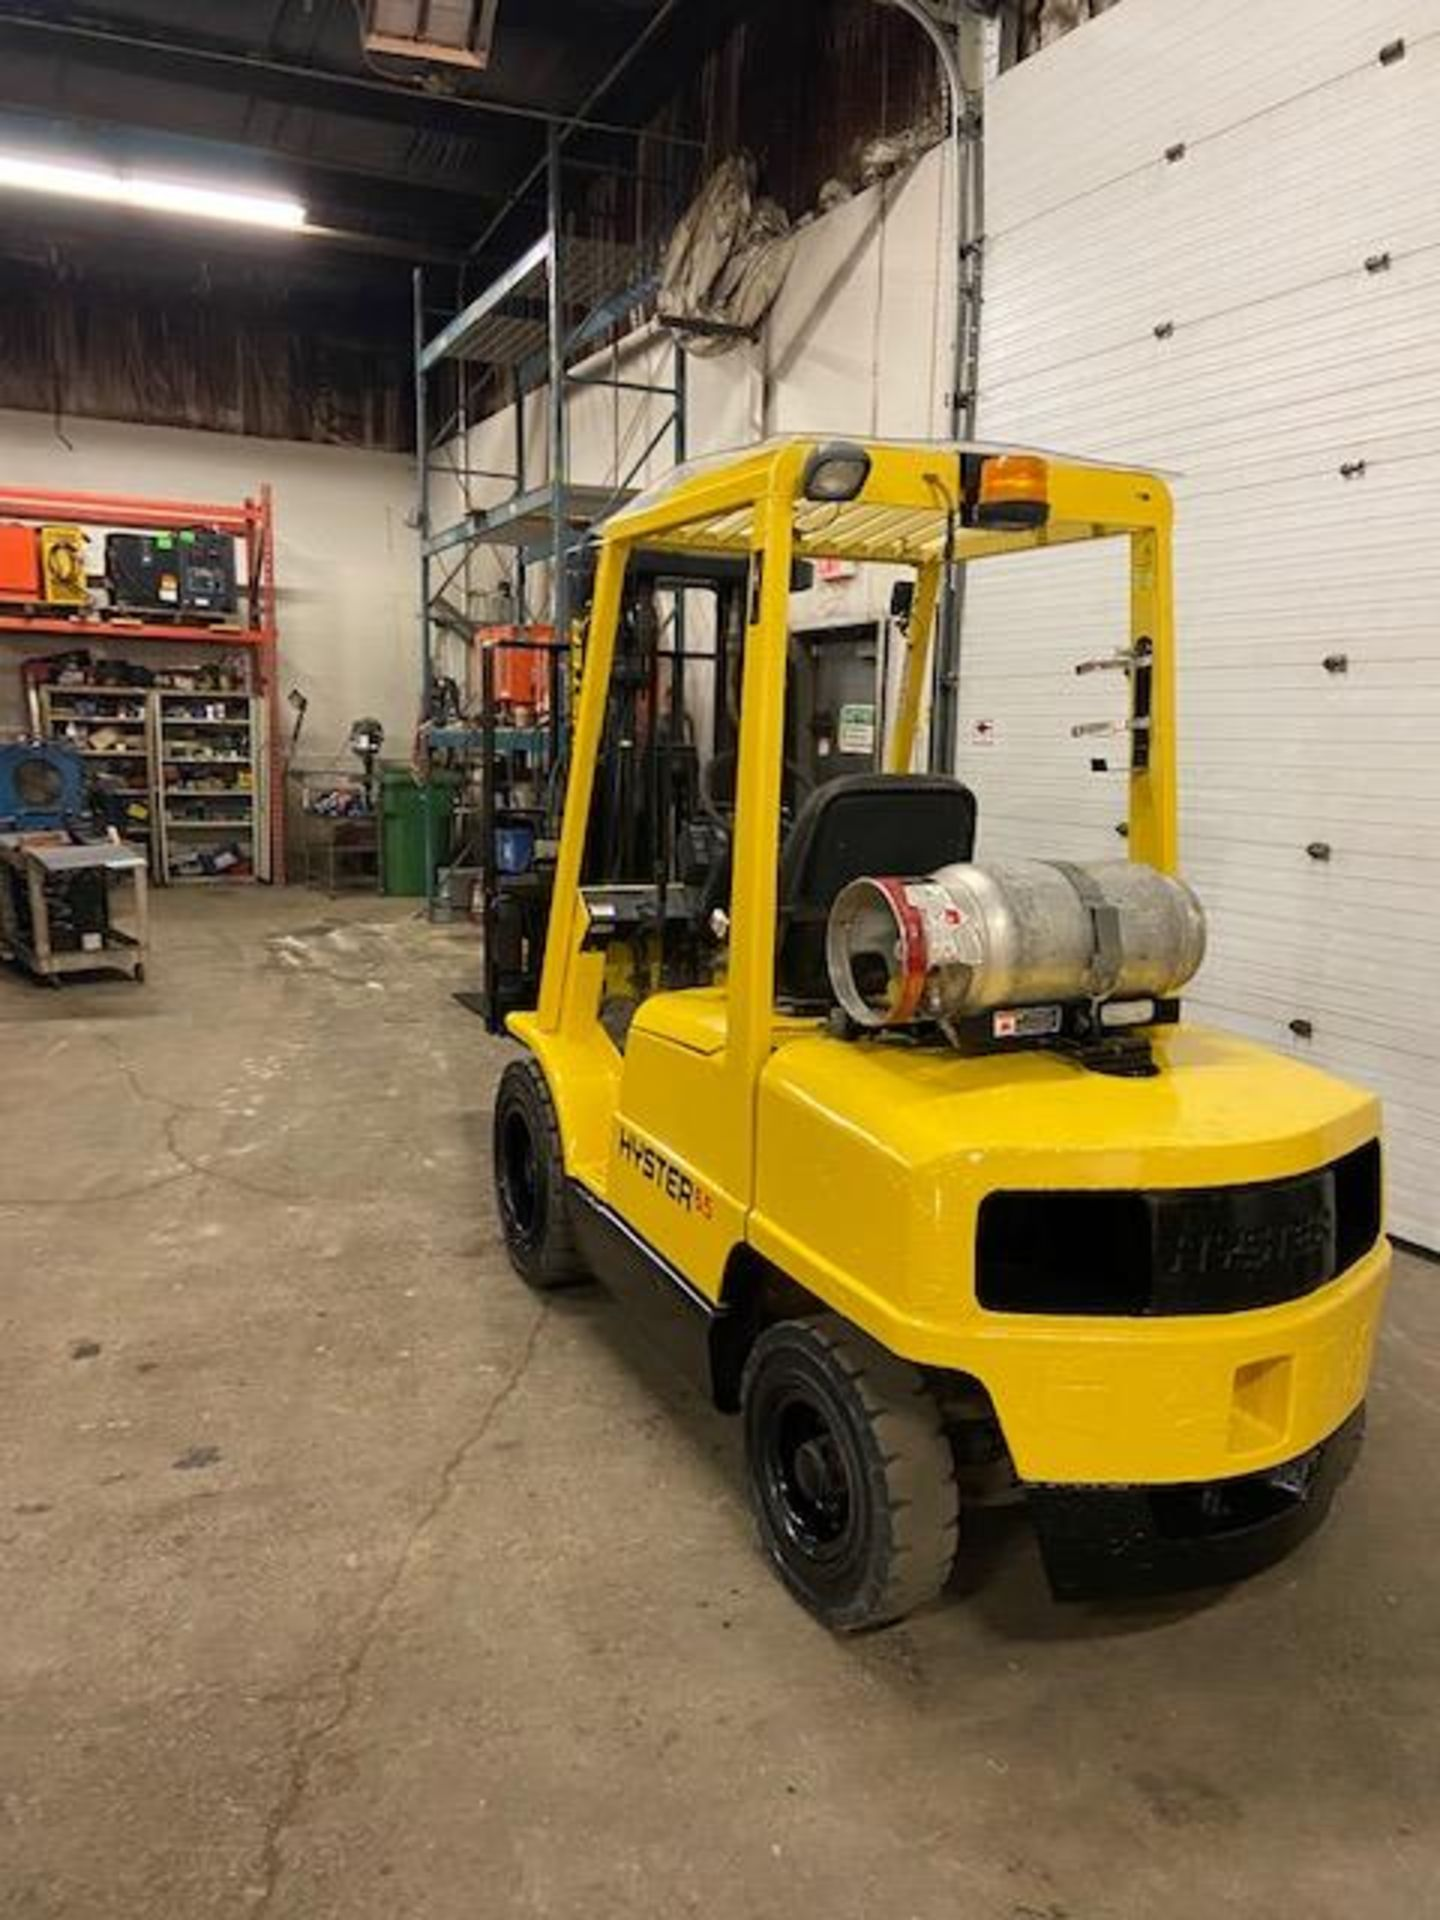 FREE CUSTOMS - Hyster 6500lbs OUTDOOR Forklift with sideshift fork positioner & 3-stage mast LPG - Image 3 of 3